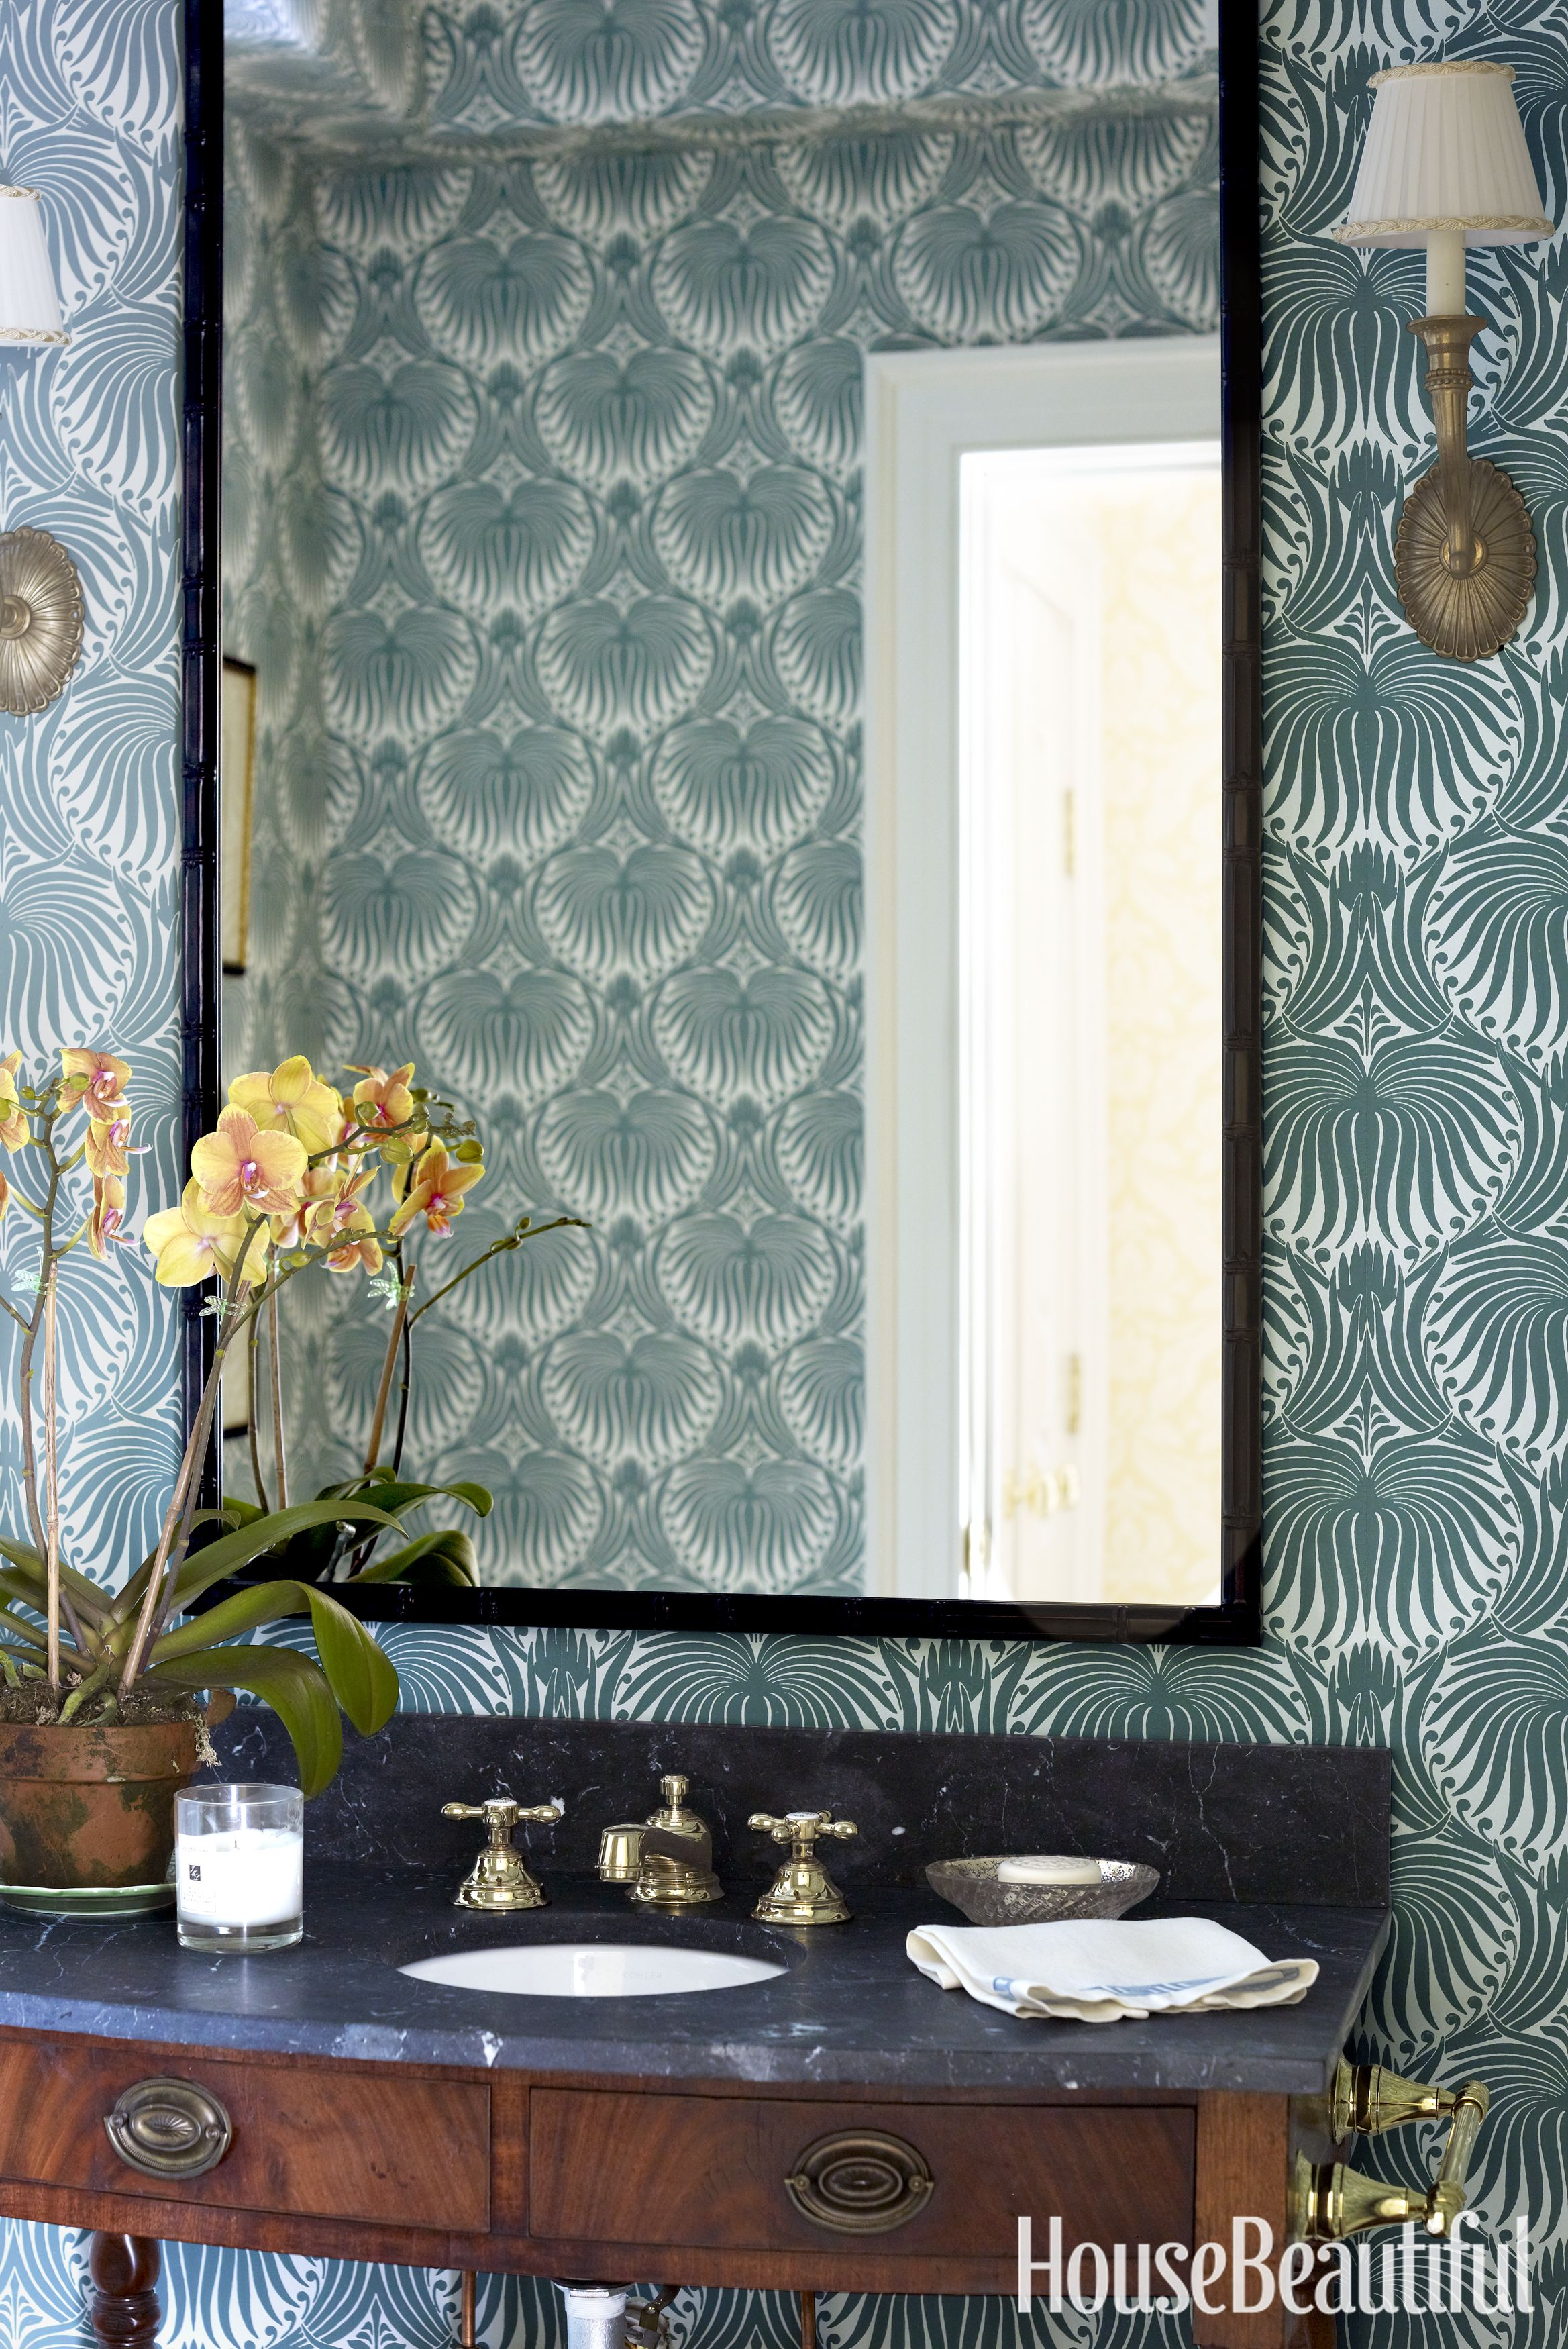 meg braff long island bathroom